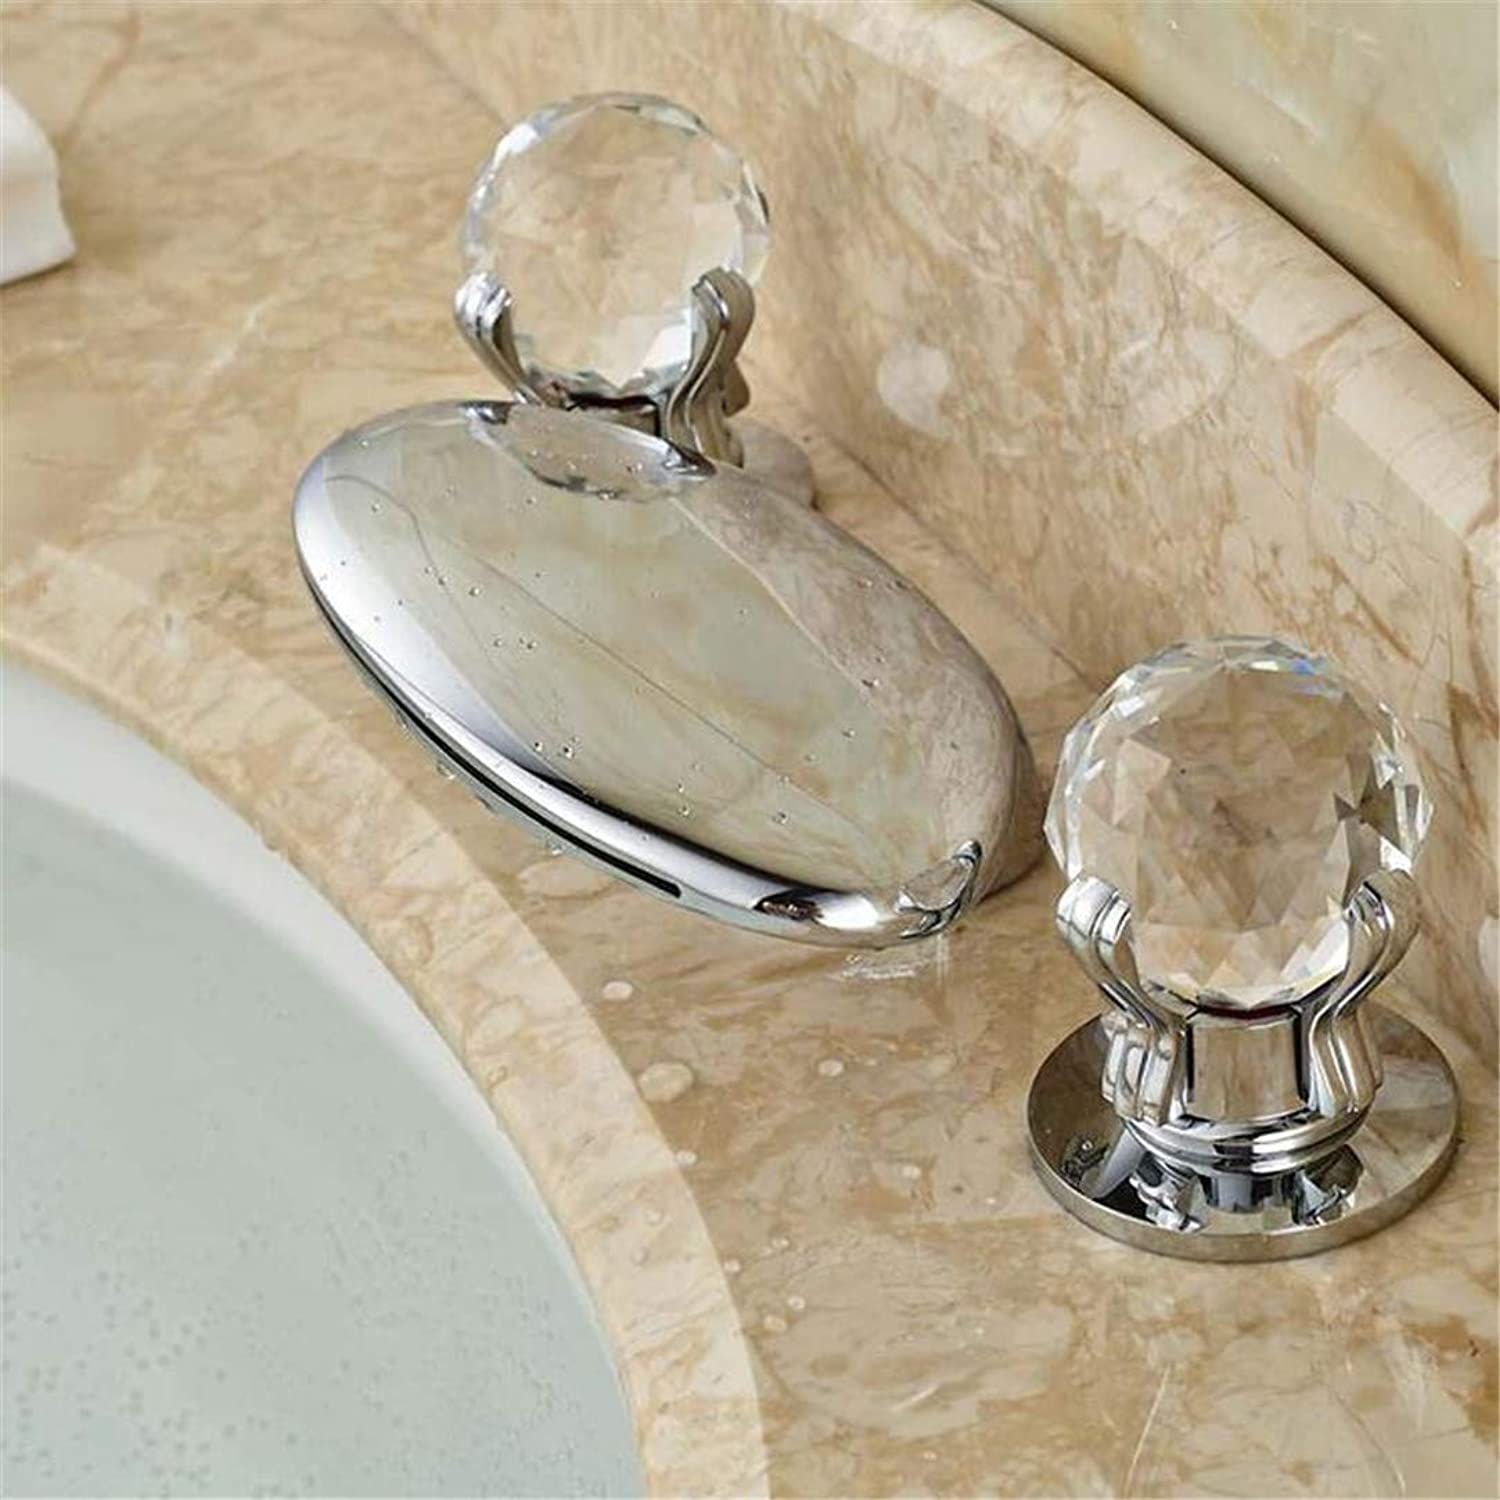 Faucets Basin Mixer Double Handles Crystal Deck Mounted Taps Chrome Finish